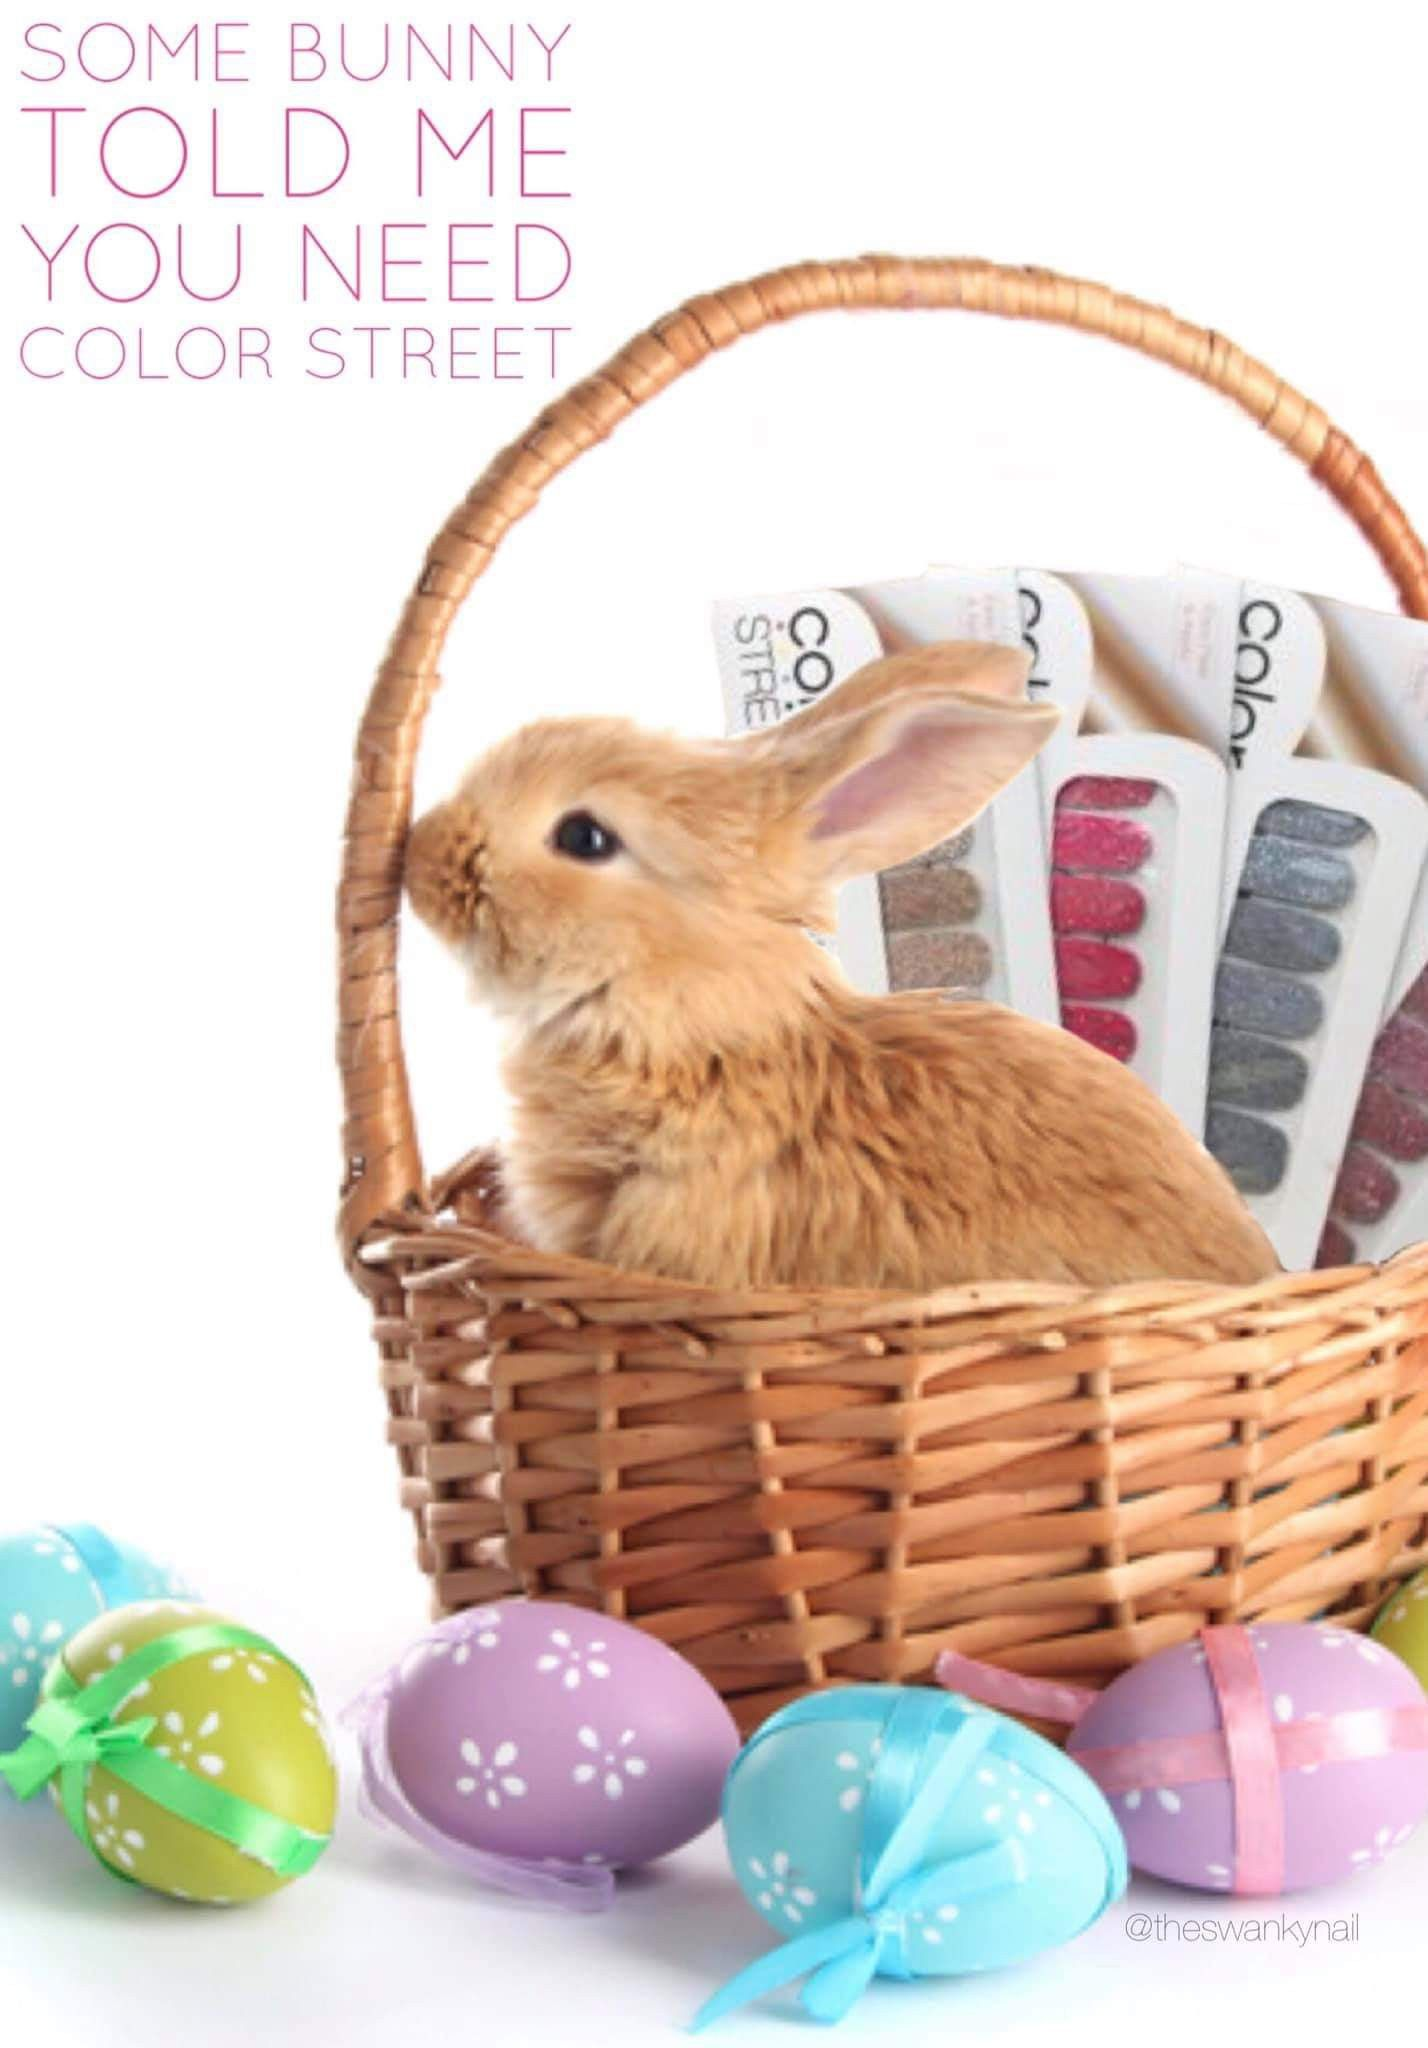 Give Color Street nail strips in their Easter Basket ...